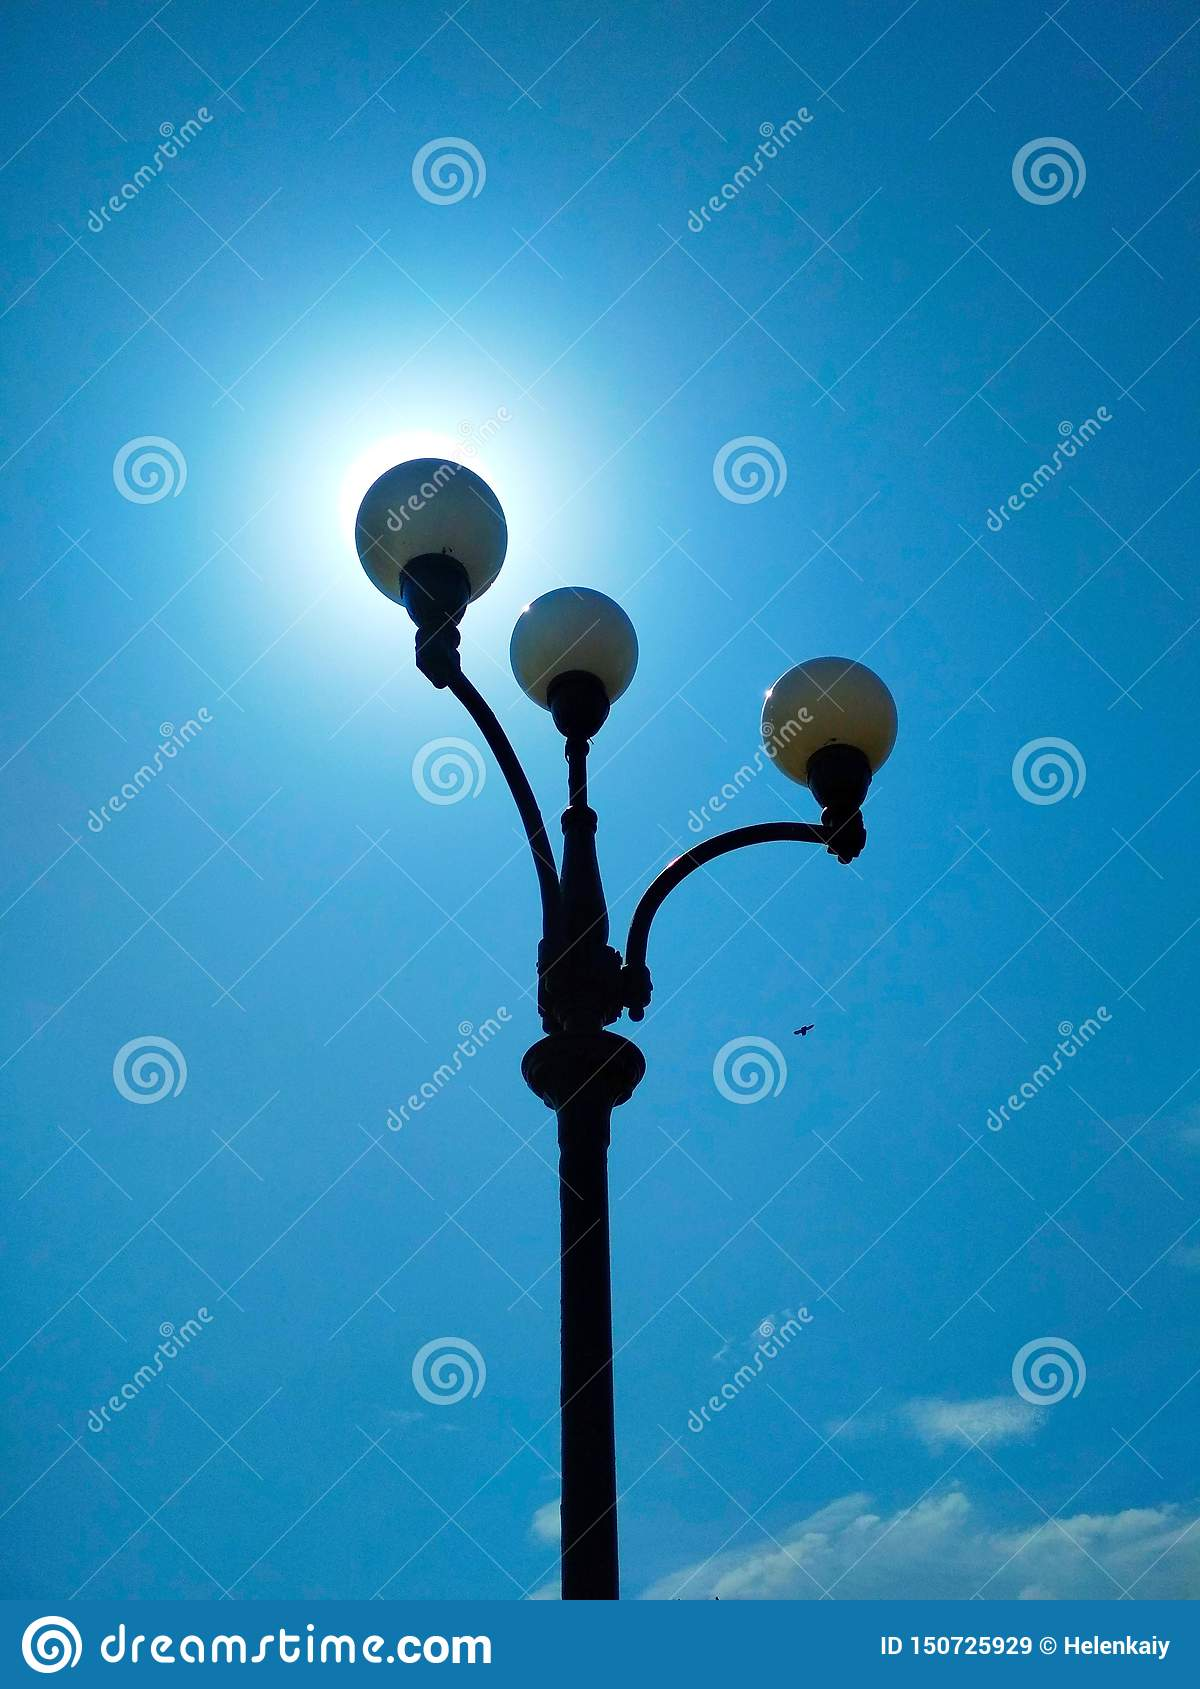 Street light, architectural decision